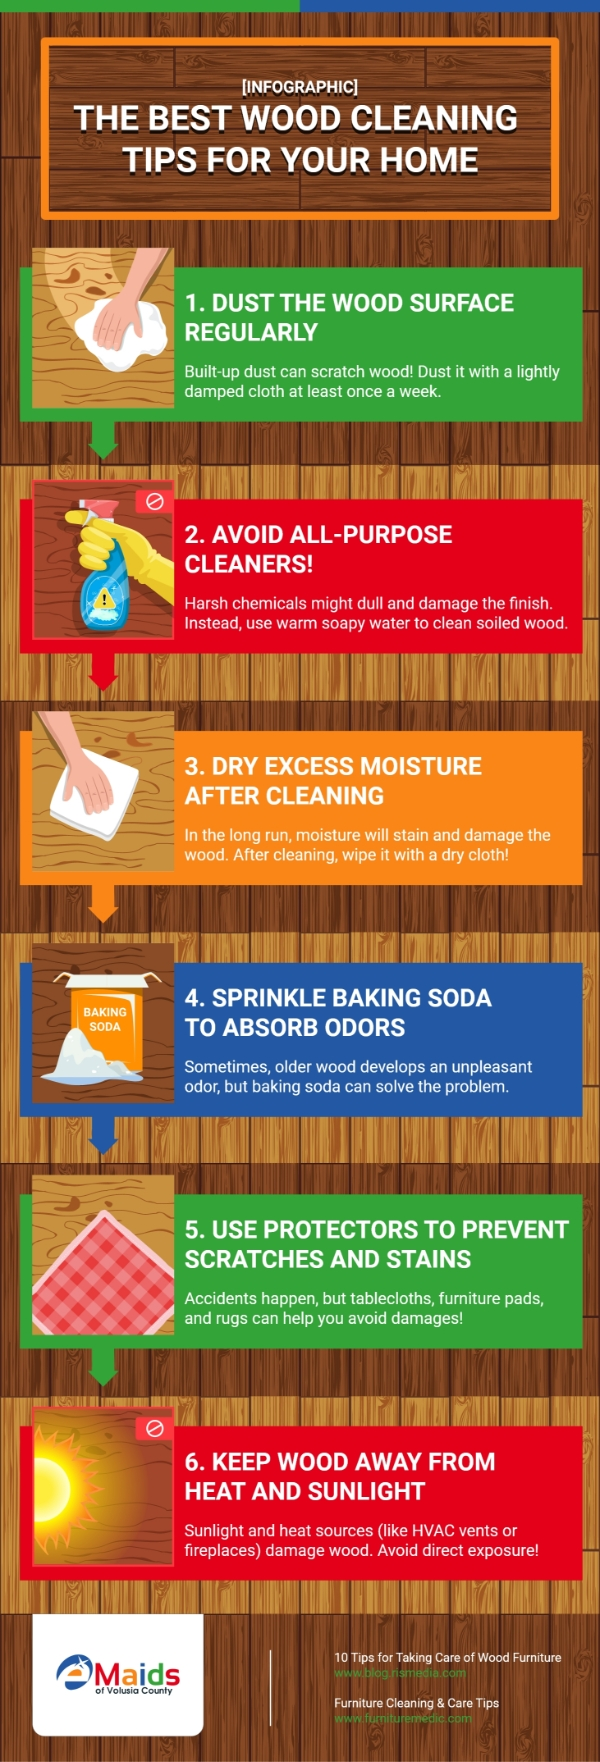 eMaids of Volusia County - [Infographic] The Best Wood Cleaning Tips For Your Home